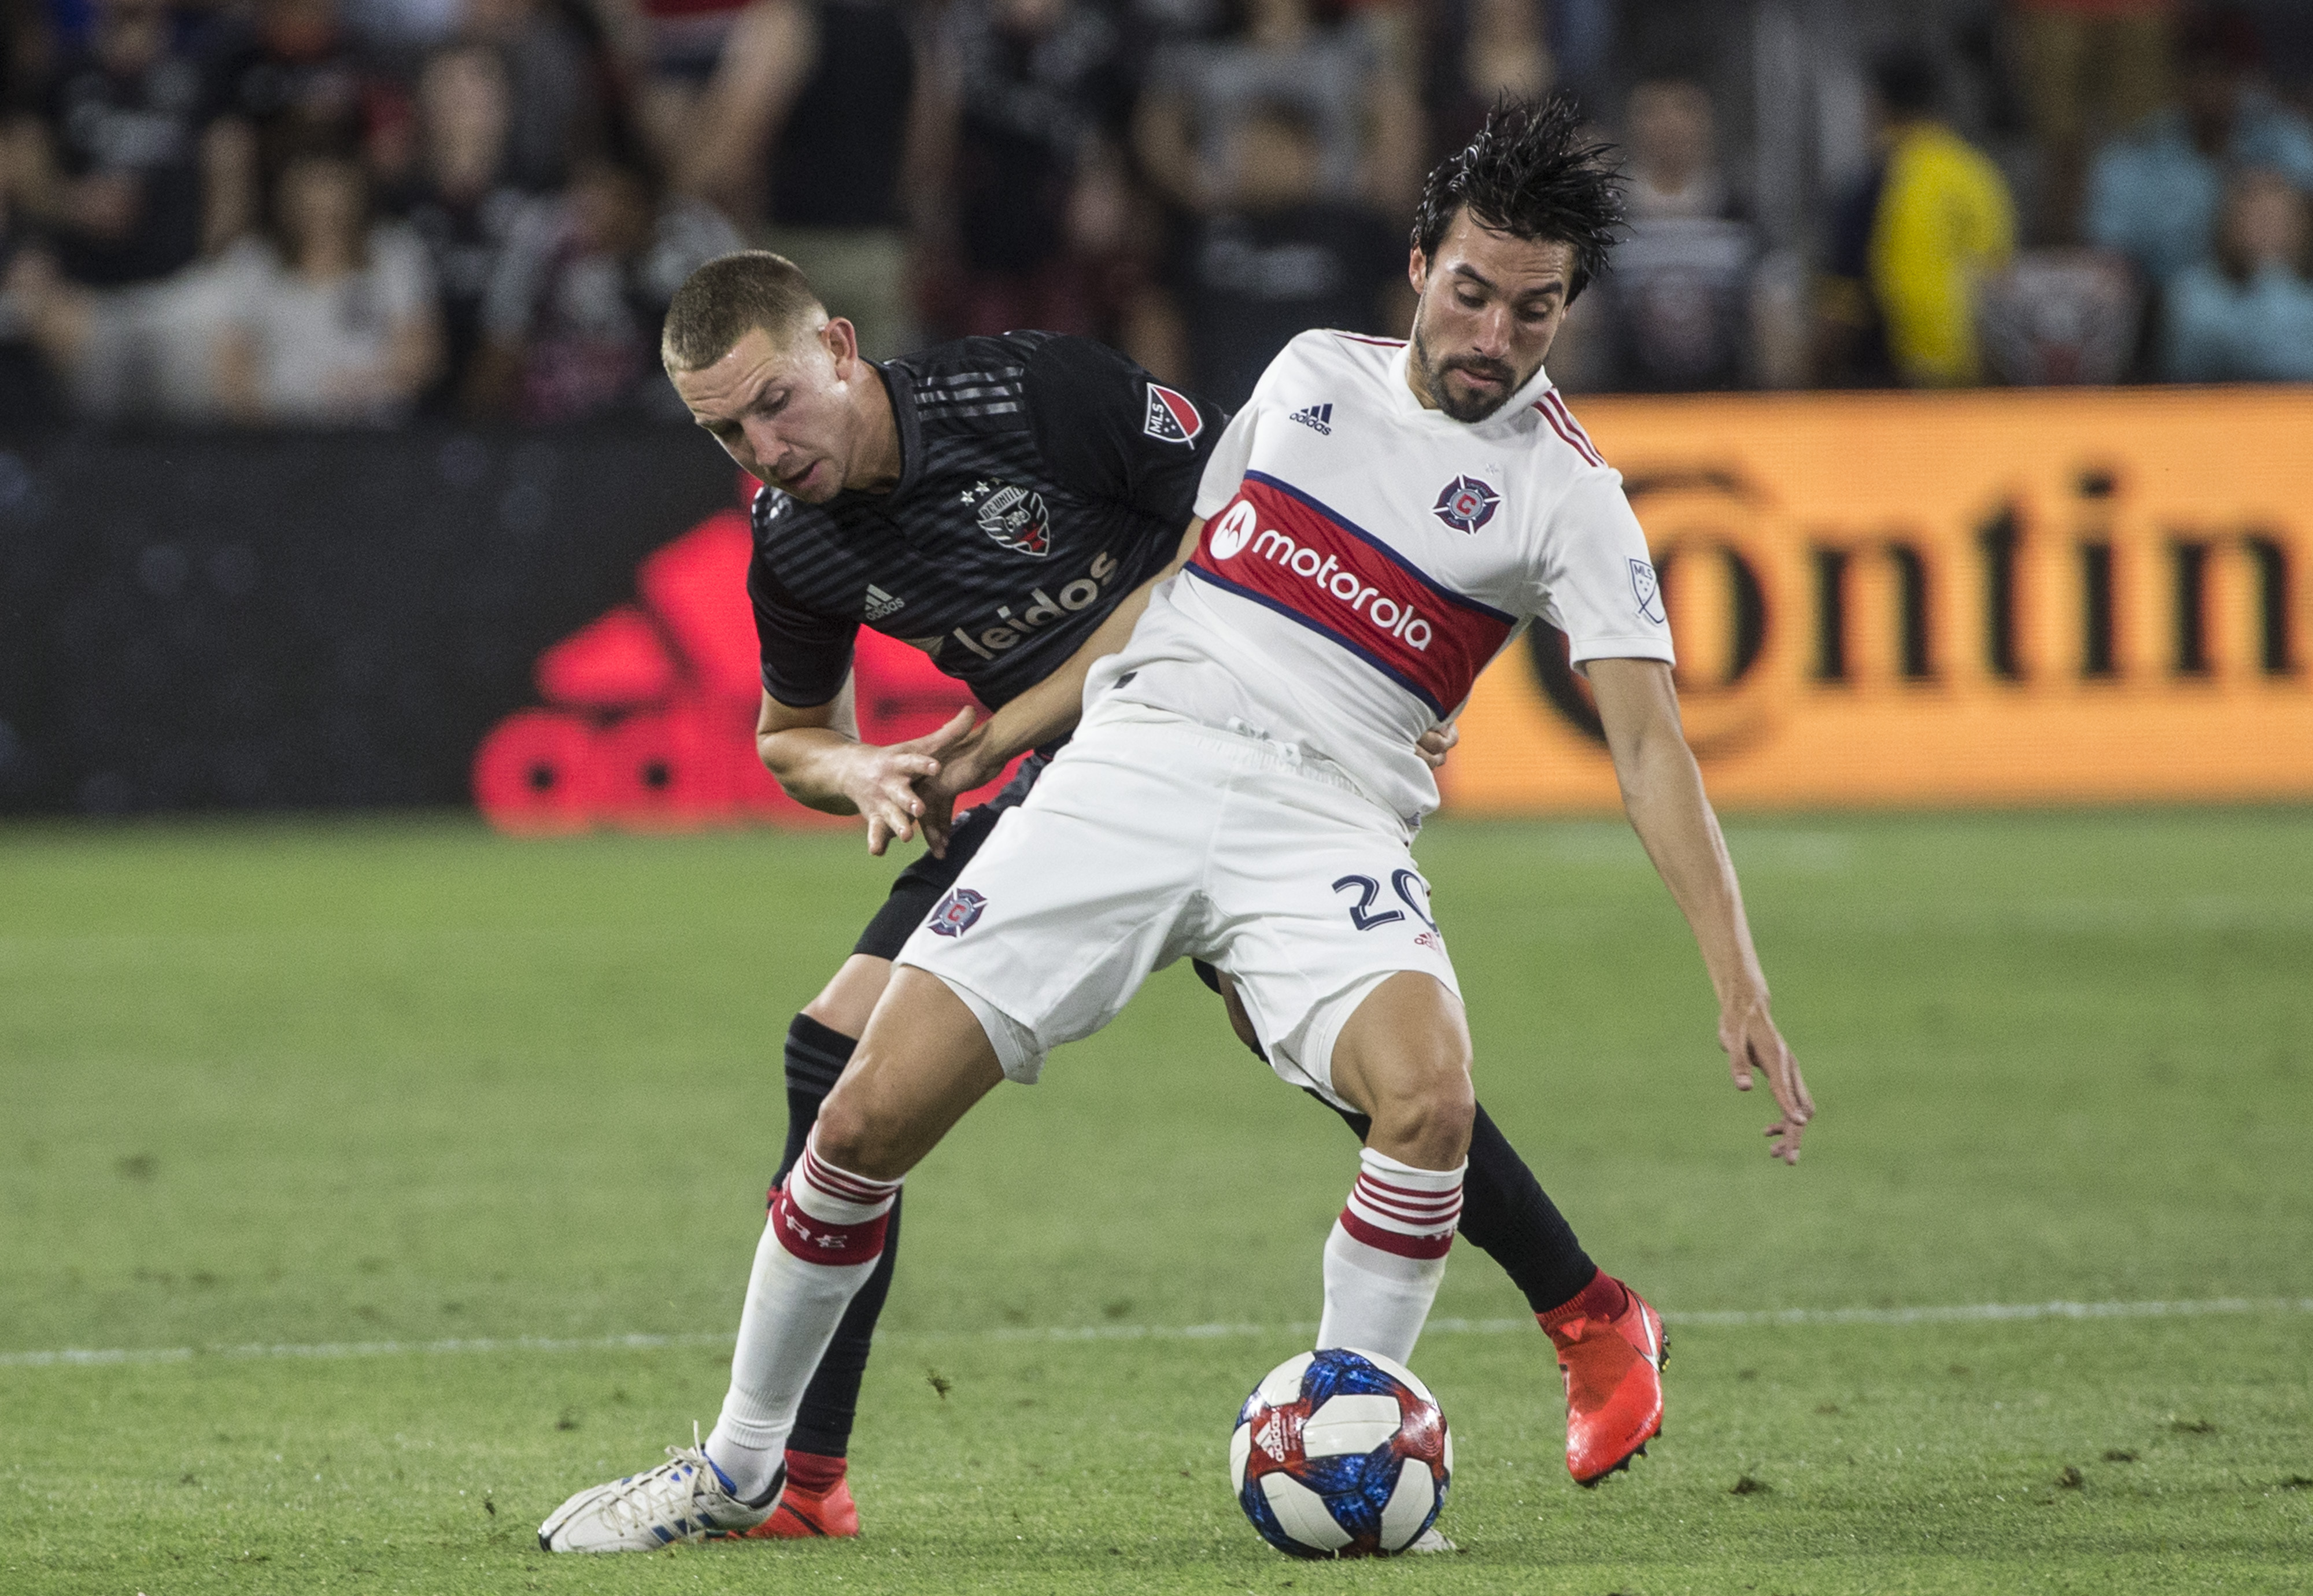 SOCCER: MAY 29 MLS - Chicago Fire at DC United